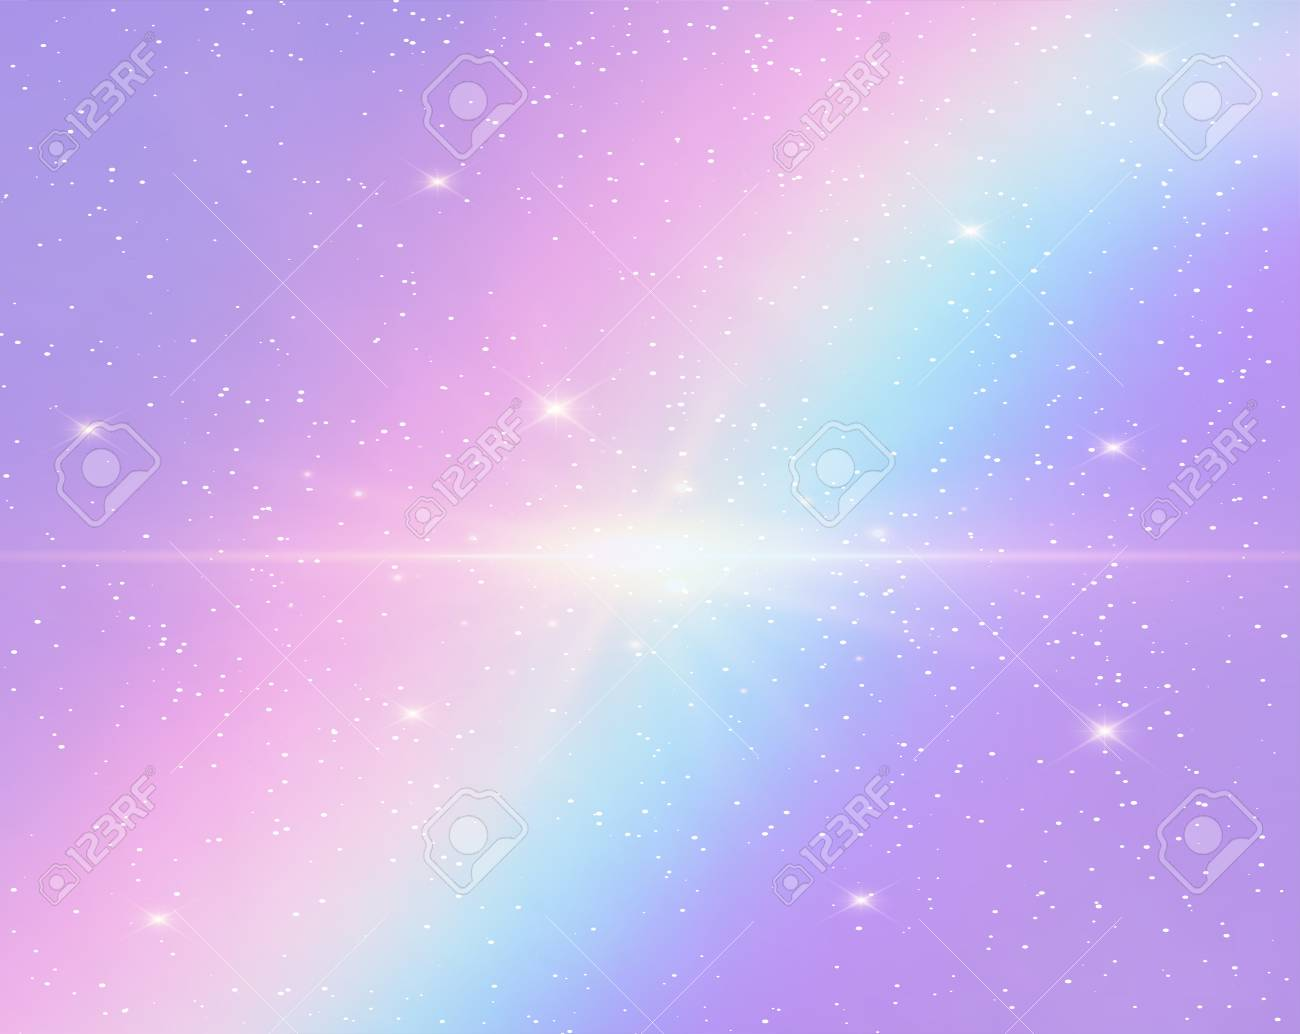 Galaxy Fantasy Background And Pastel Colorthe Unicorn In Pastel - pastel cute background design galaxy background